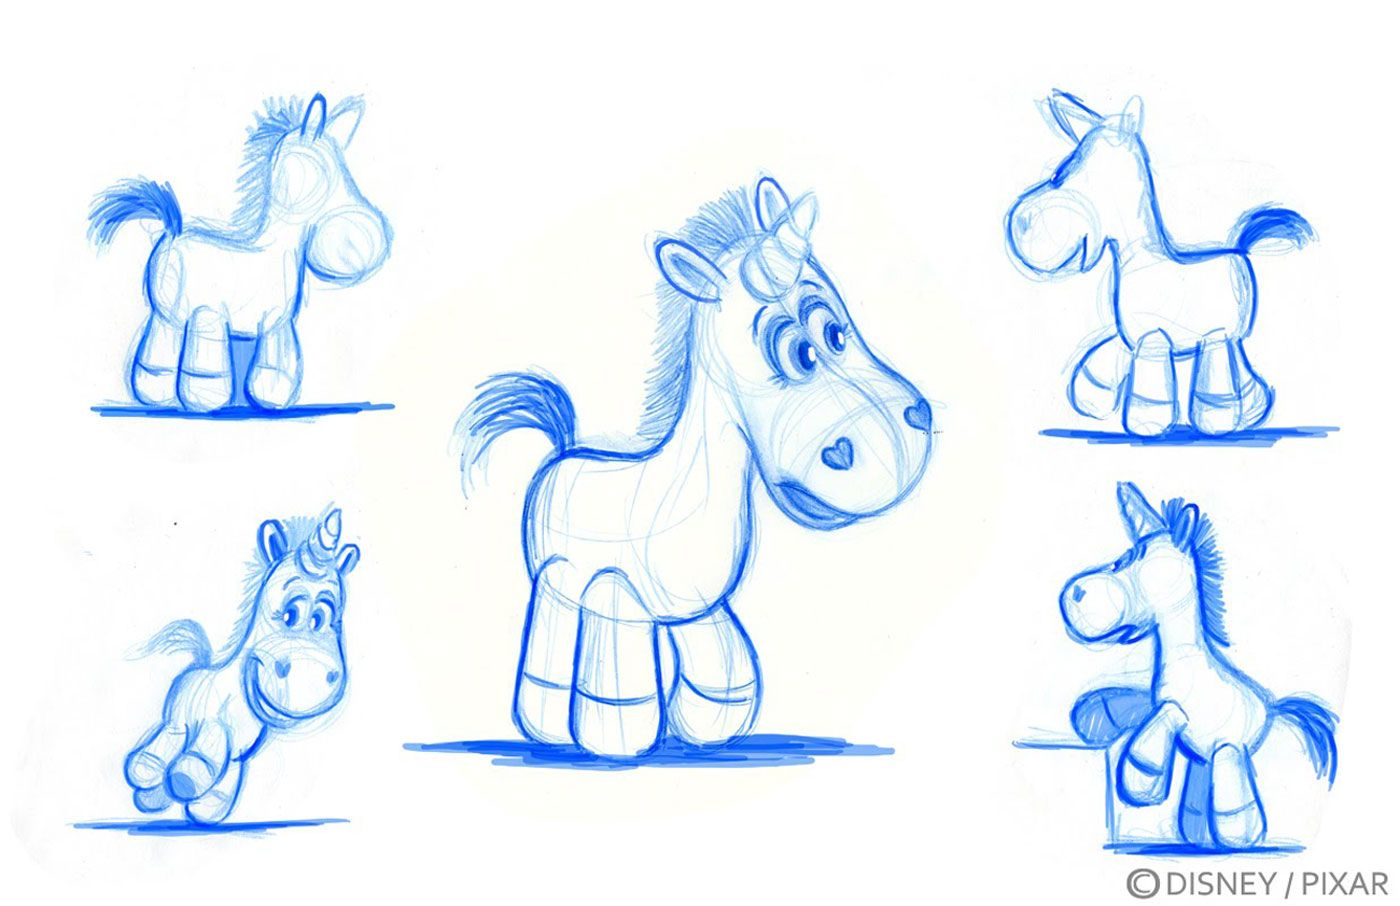 1400x906 Toy Story 3 Things Toy, Sketches And Character Design